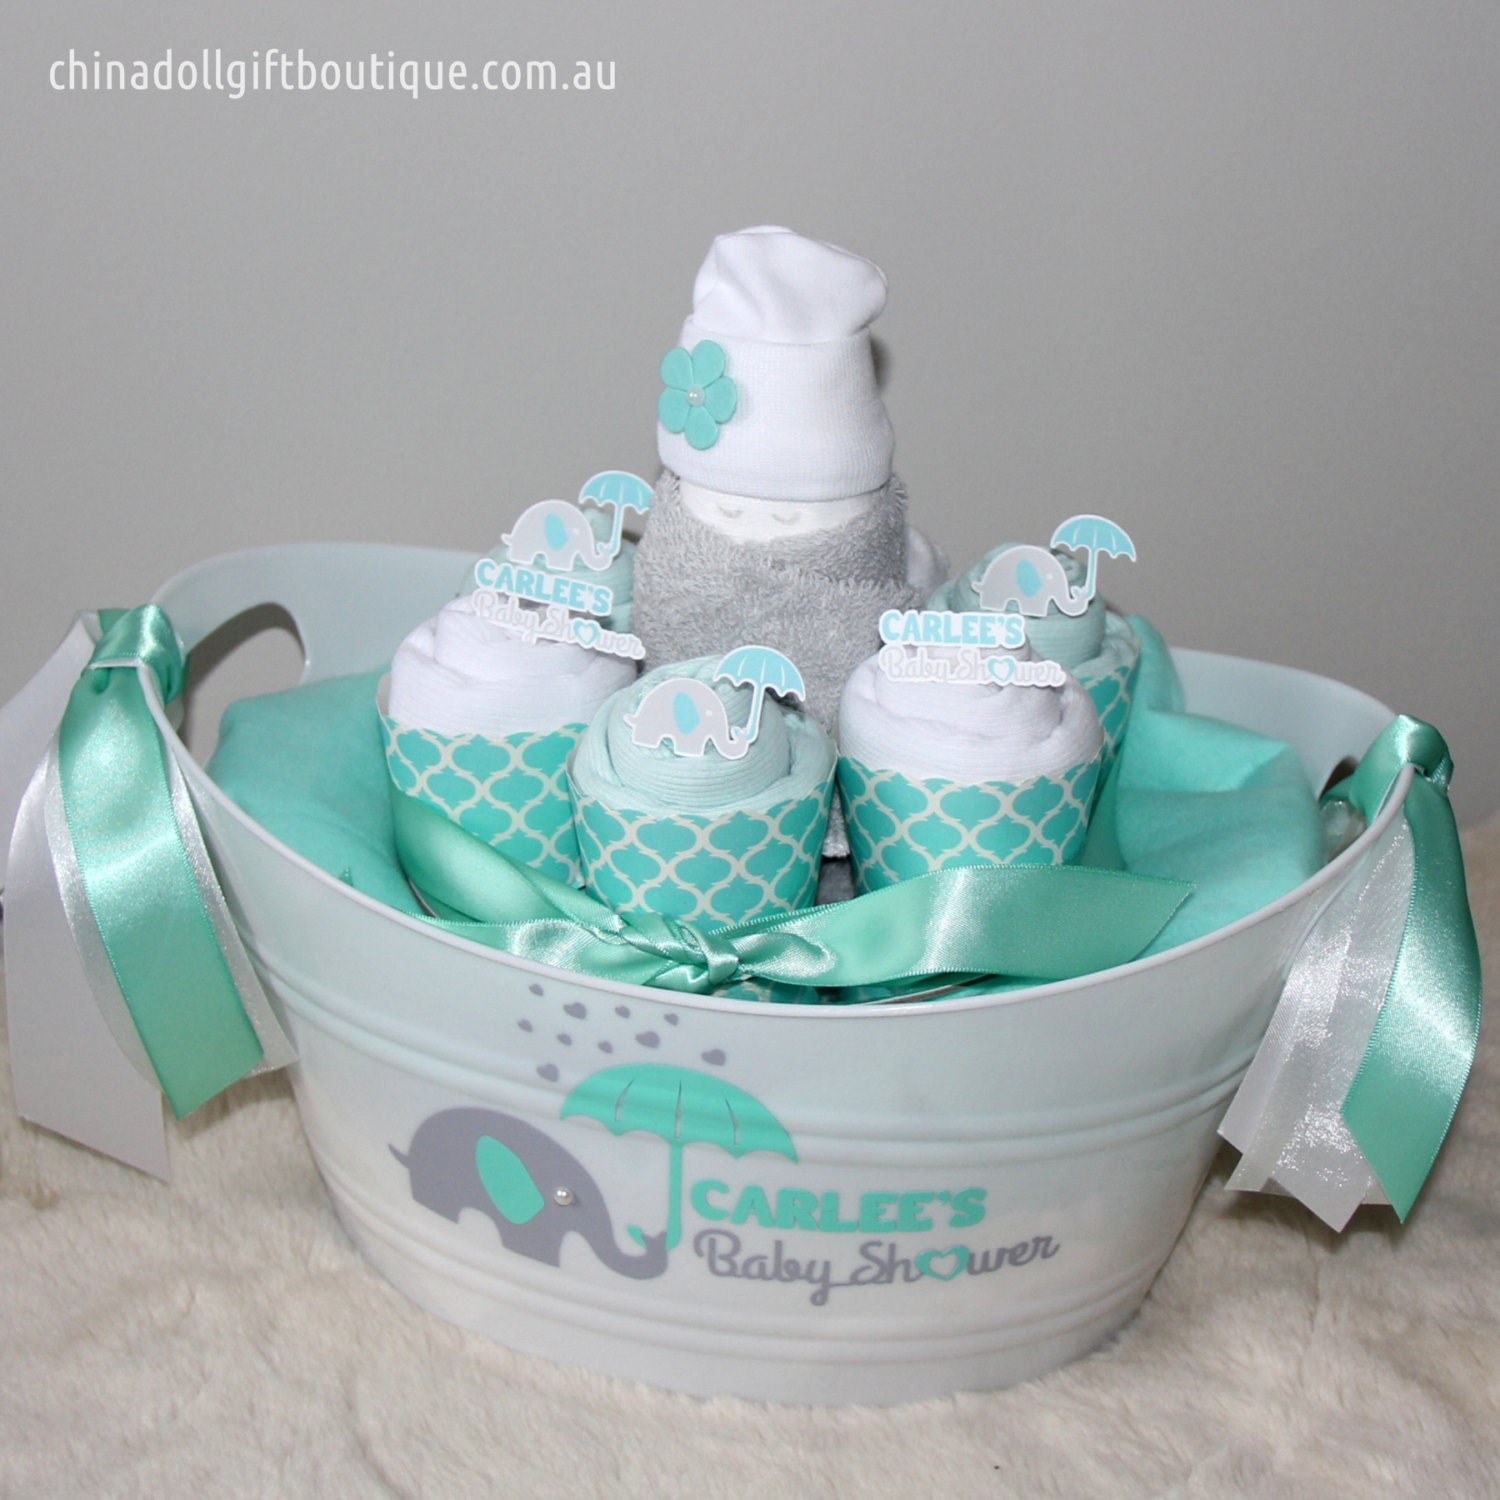 baby shower gift basket small personalised mint and white